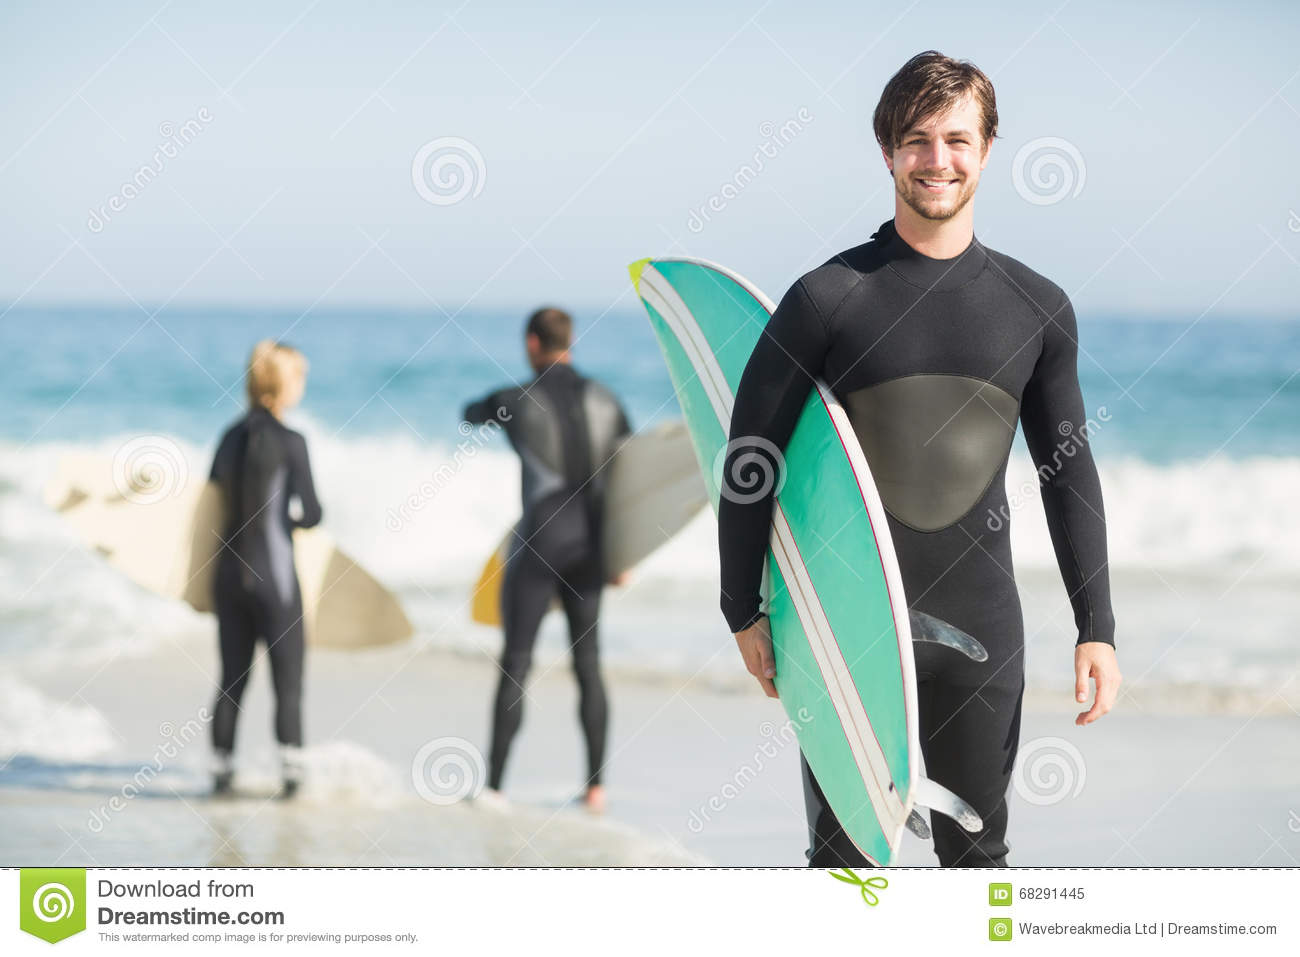 Portrait Of Happy Man Holding A Surfboard On The Beach Stock Image ... 7c8688529